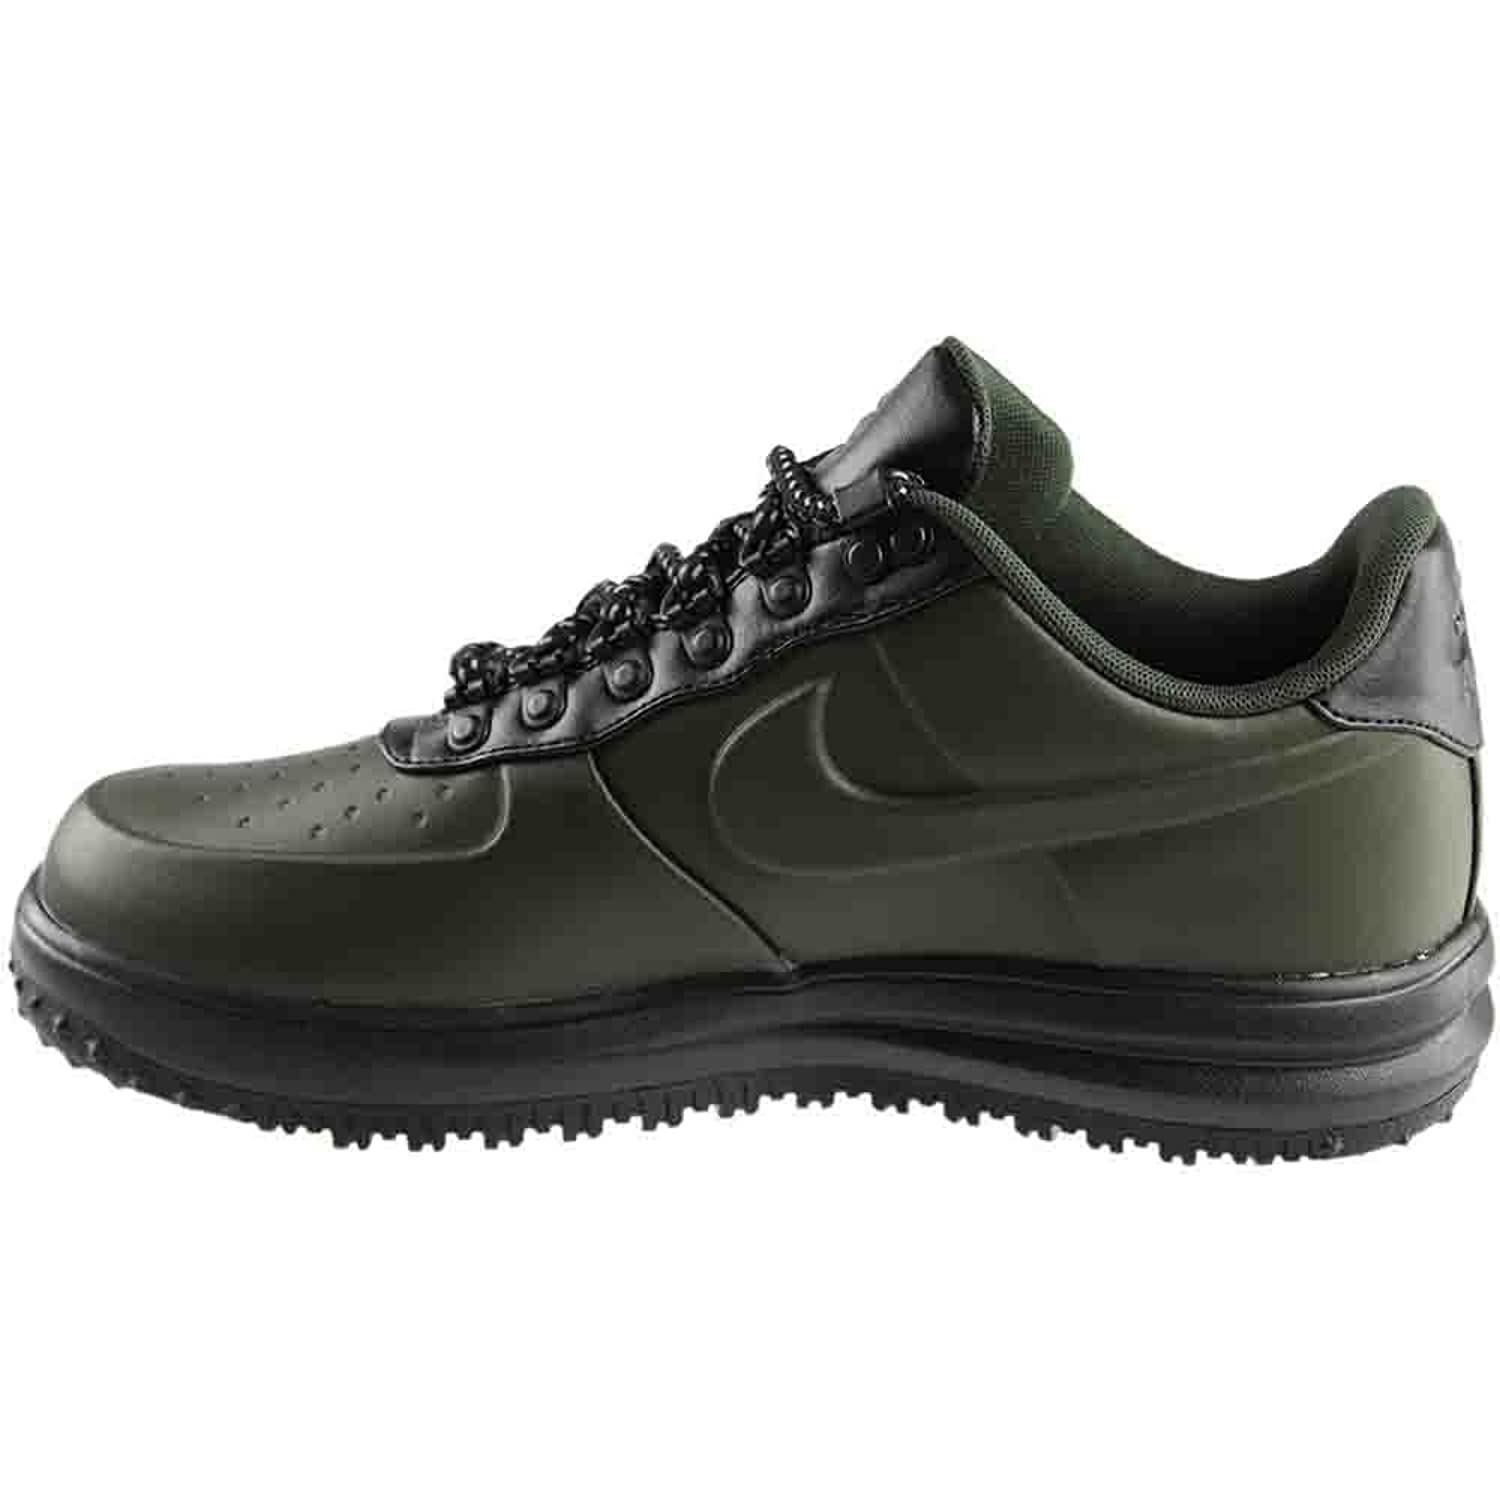 Nike Lunar Force 1 Duckboot Low Mens Trainers: Amazon.co.uk: Shoes & Bags